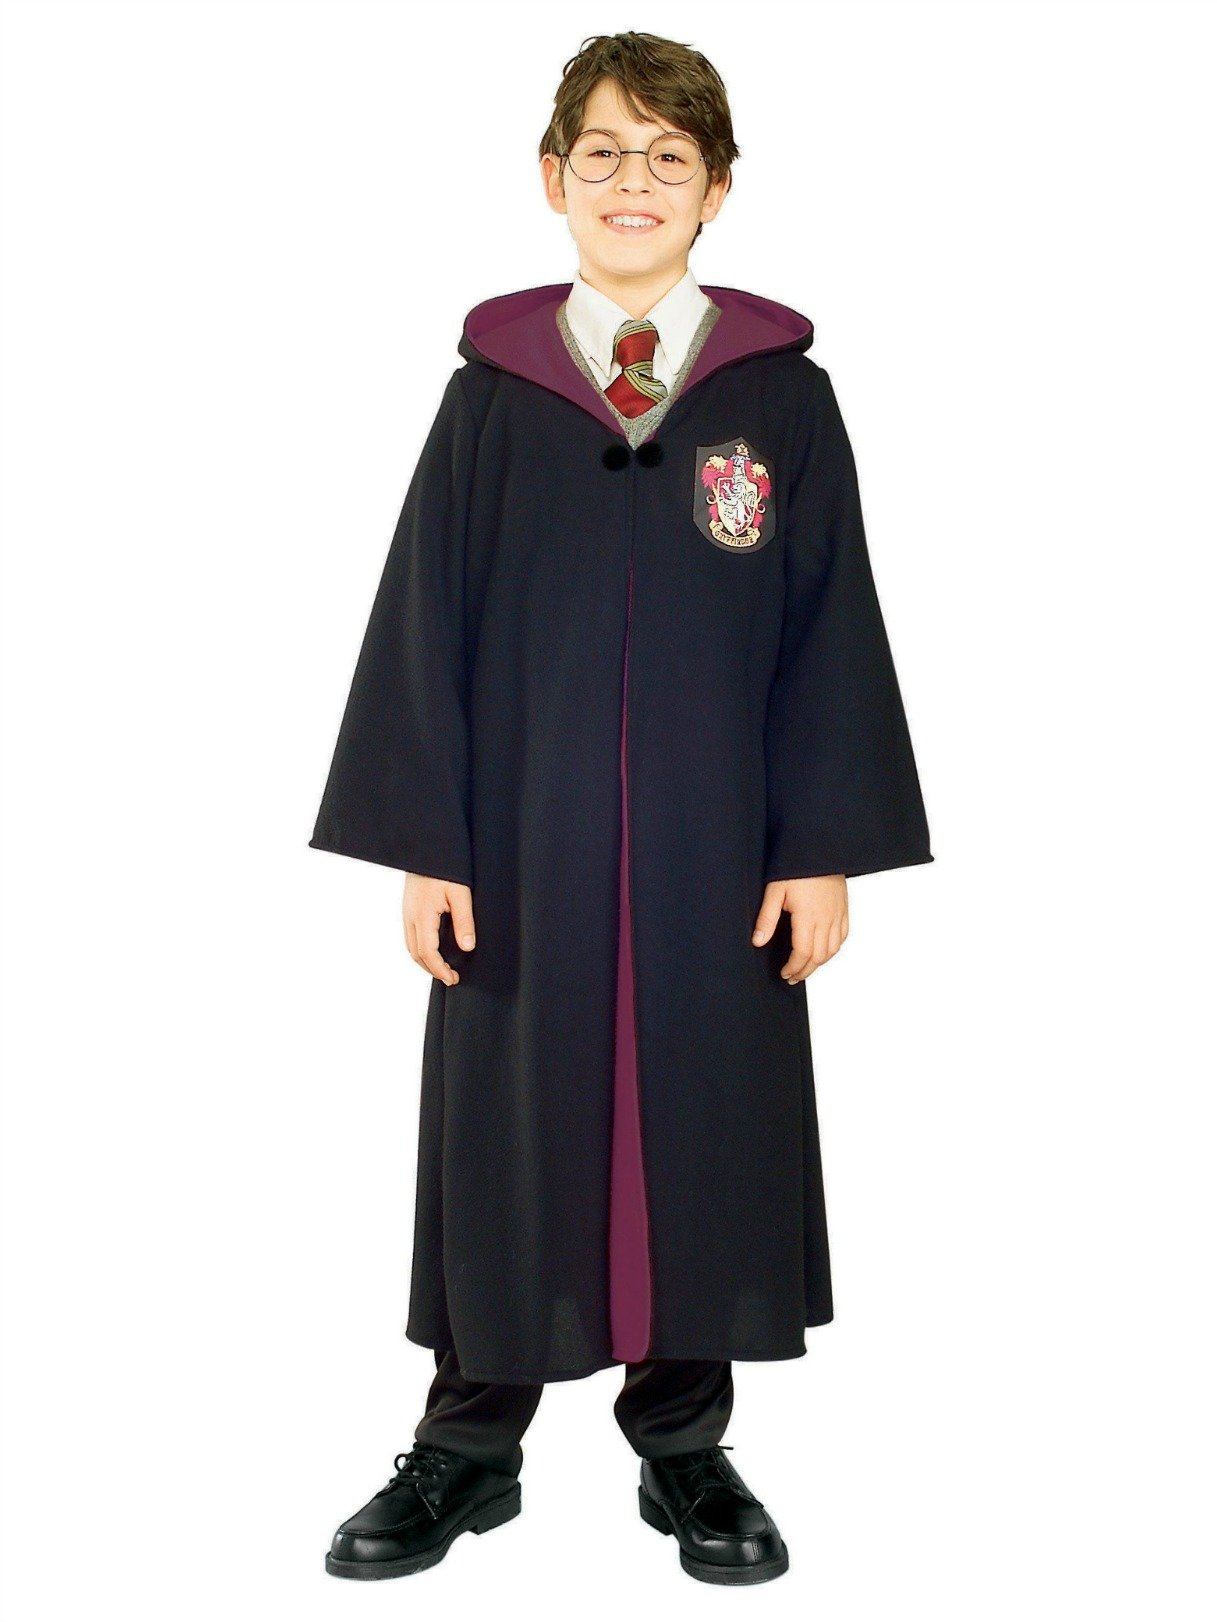 Harry Potter Robe Boys Deluxe Costume